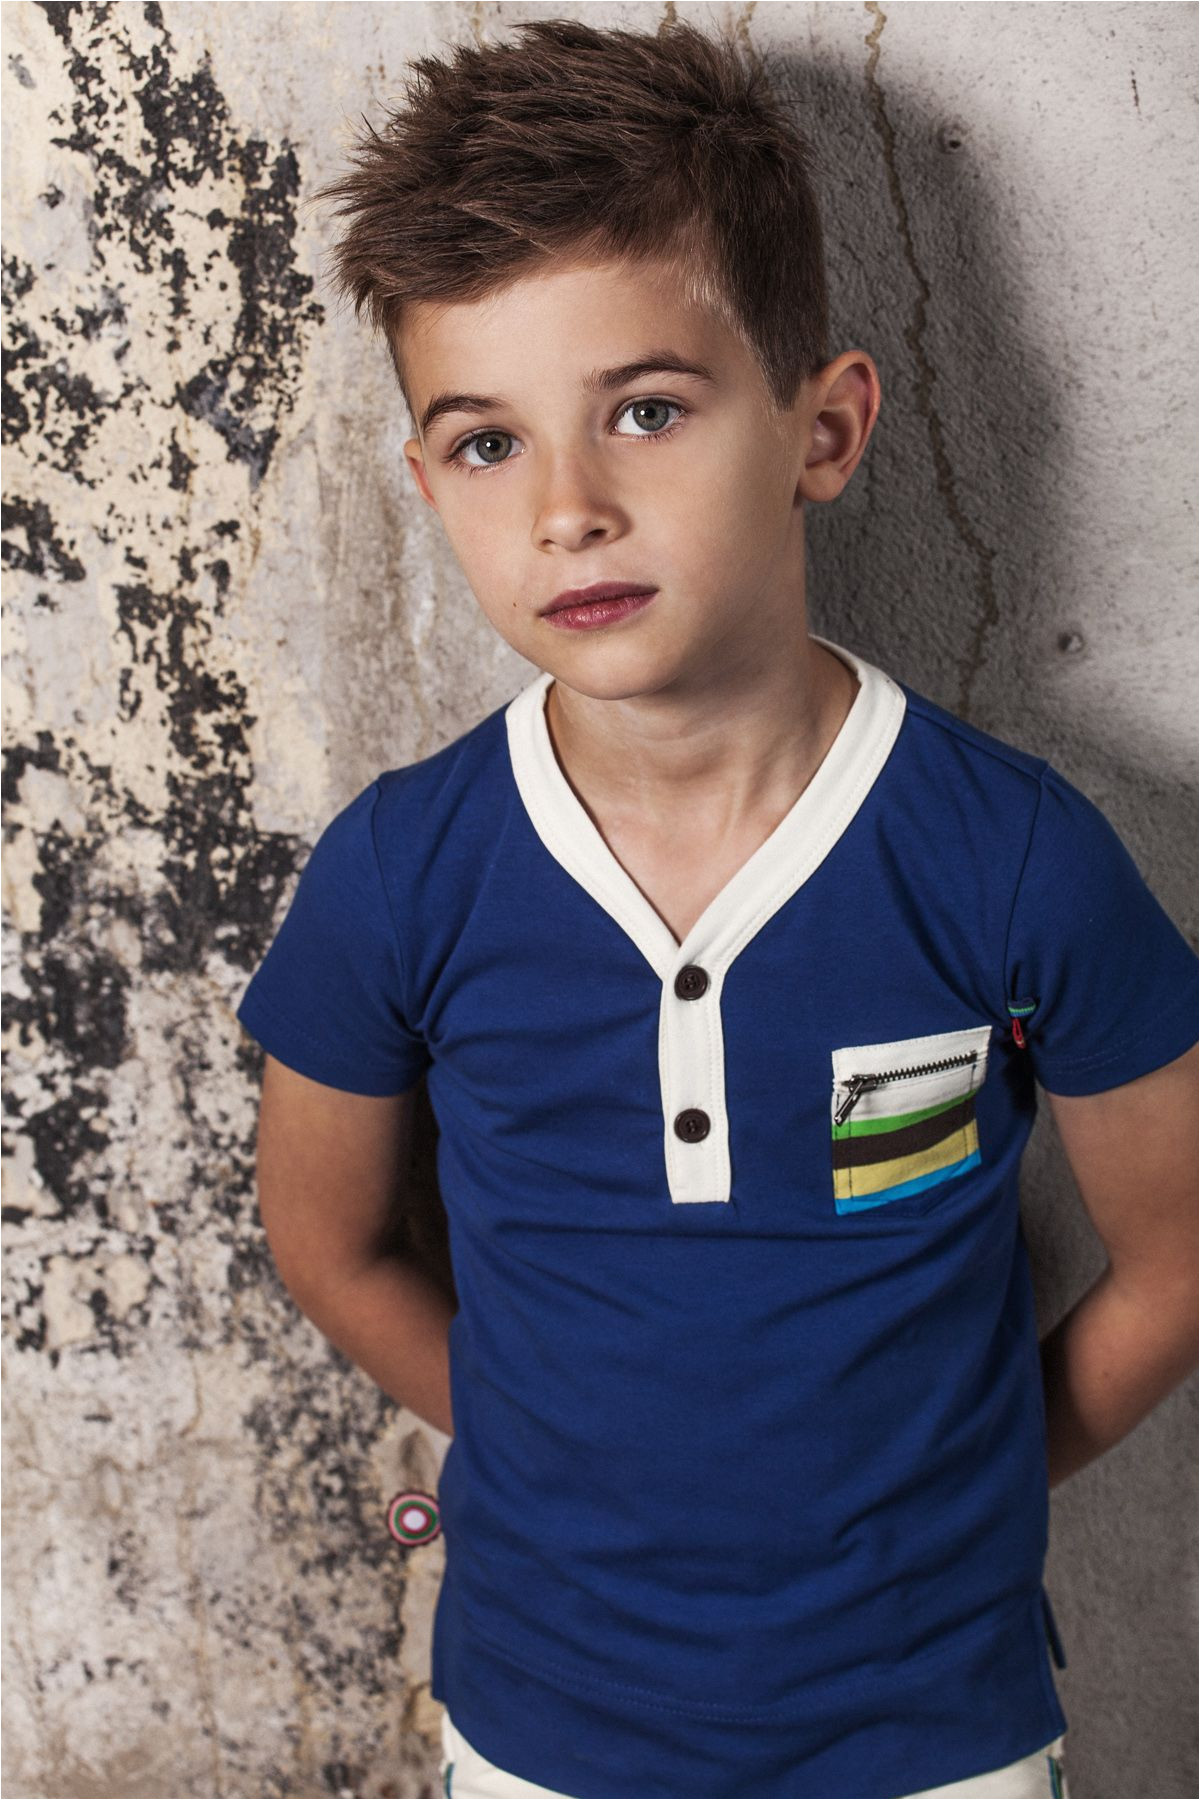 Love this little boys look Adorable hair and shirt